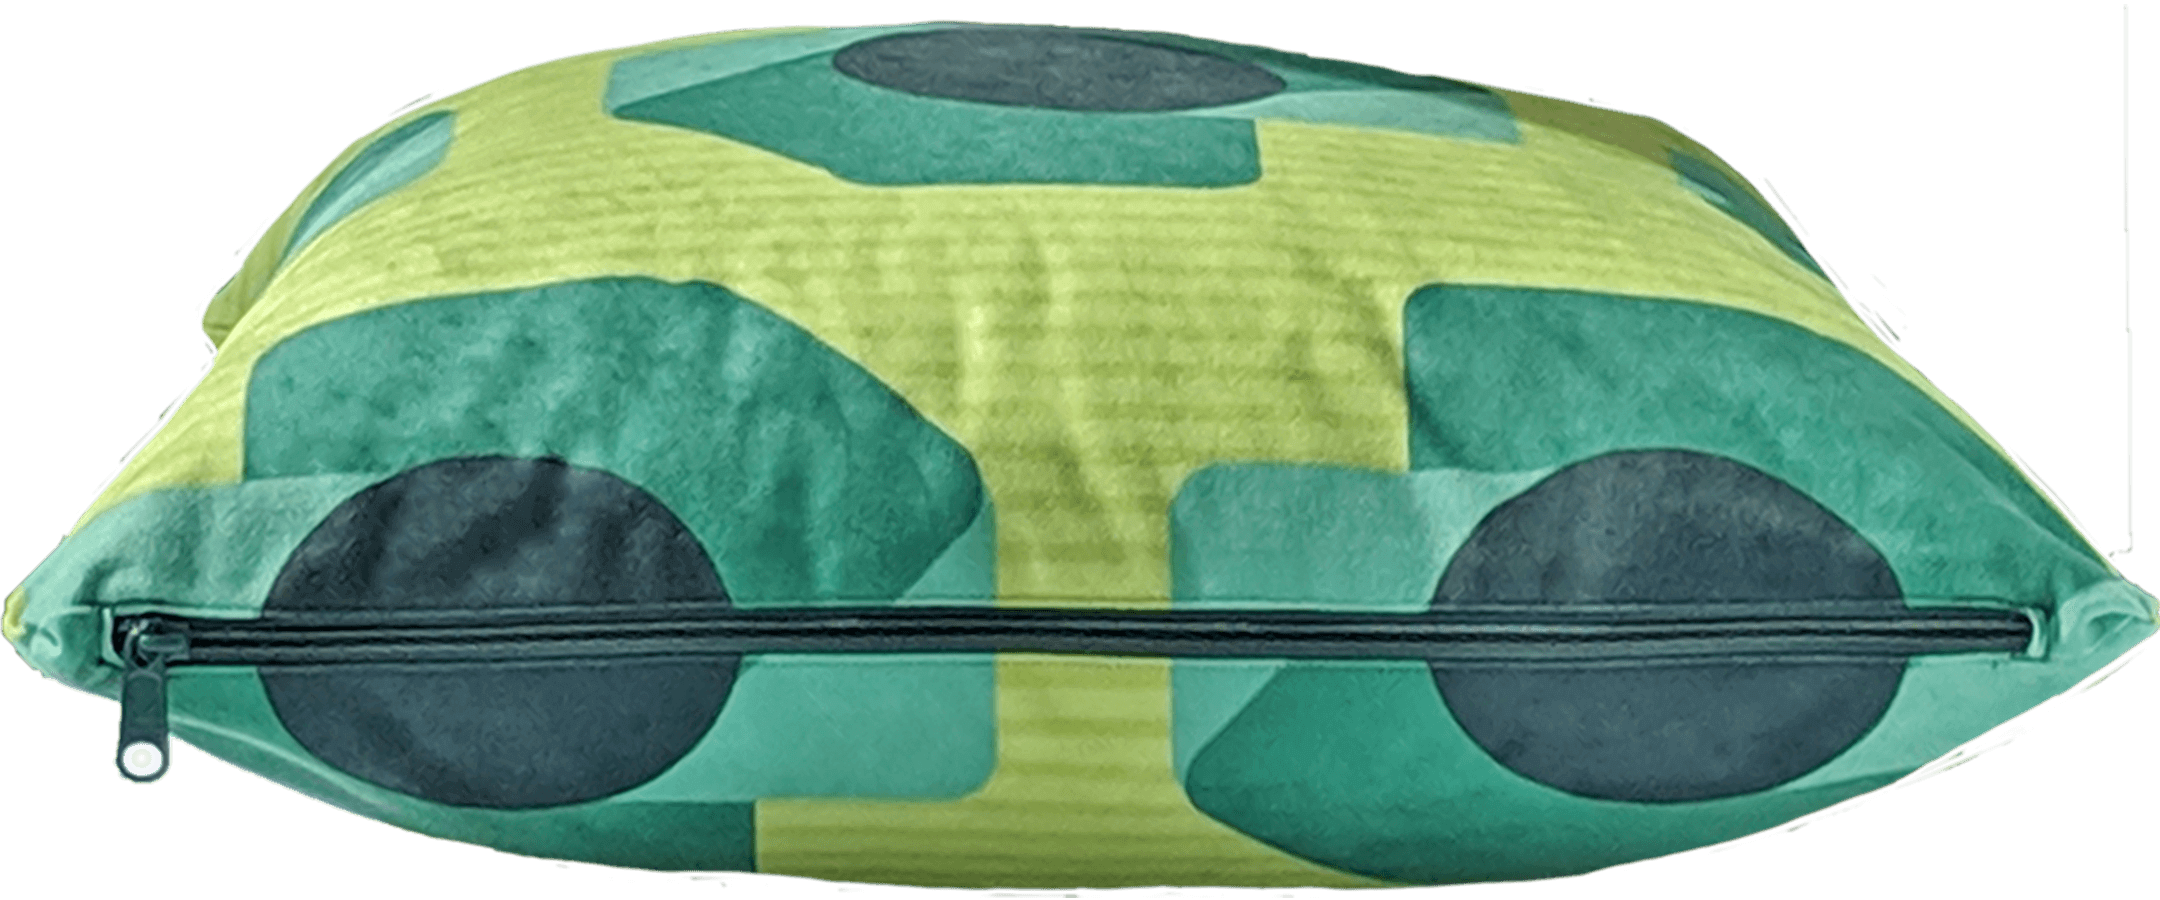 Green removable washable throw pillow with zipper showing